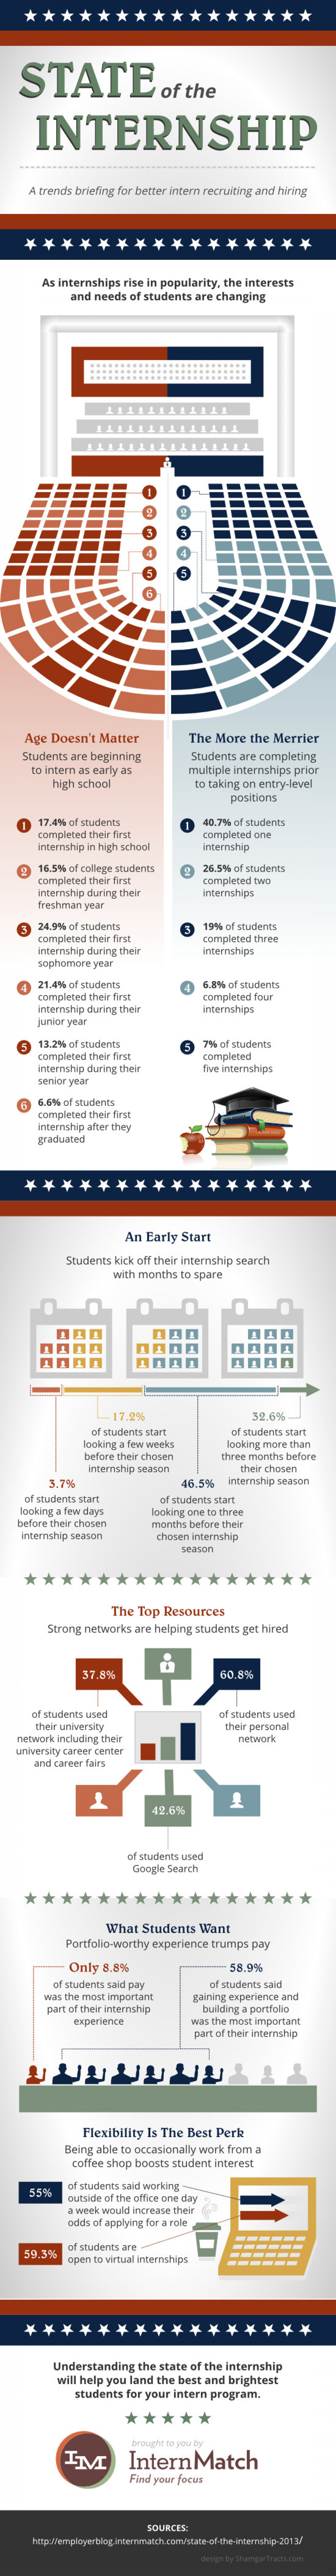 The State Of The Internship Infographic